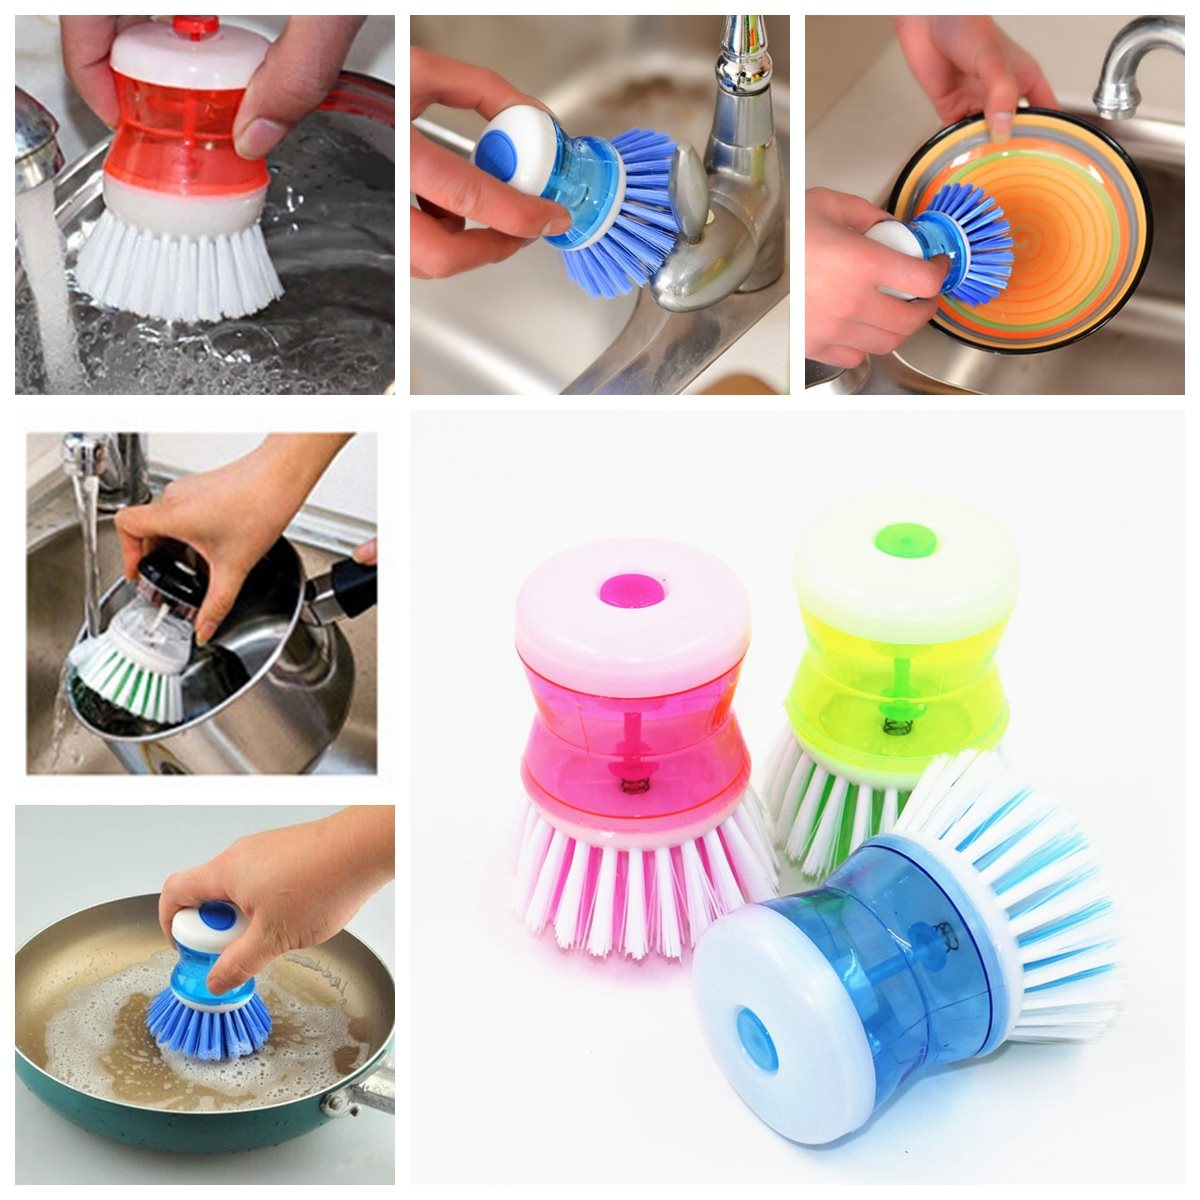 Newest Best Price Kitchen Wash Tool Pot Pan Dish Bowl For Palm Brush Scrubber Cleaning Cleaner Plastic For Cleaning(China (Mainland))